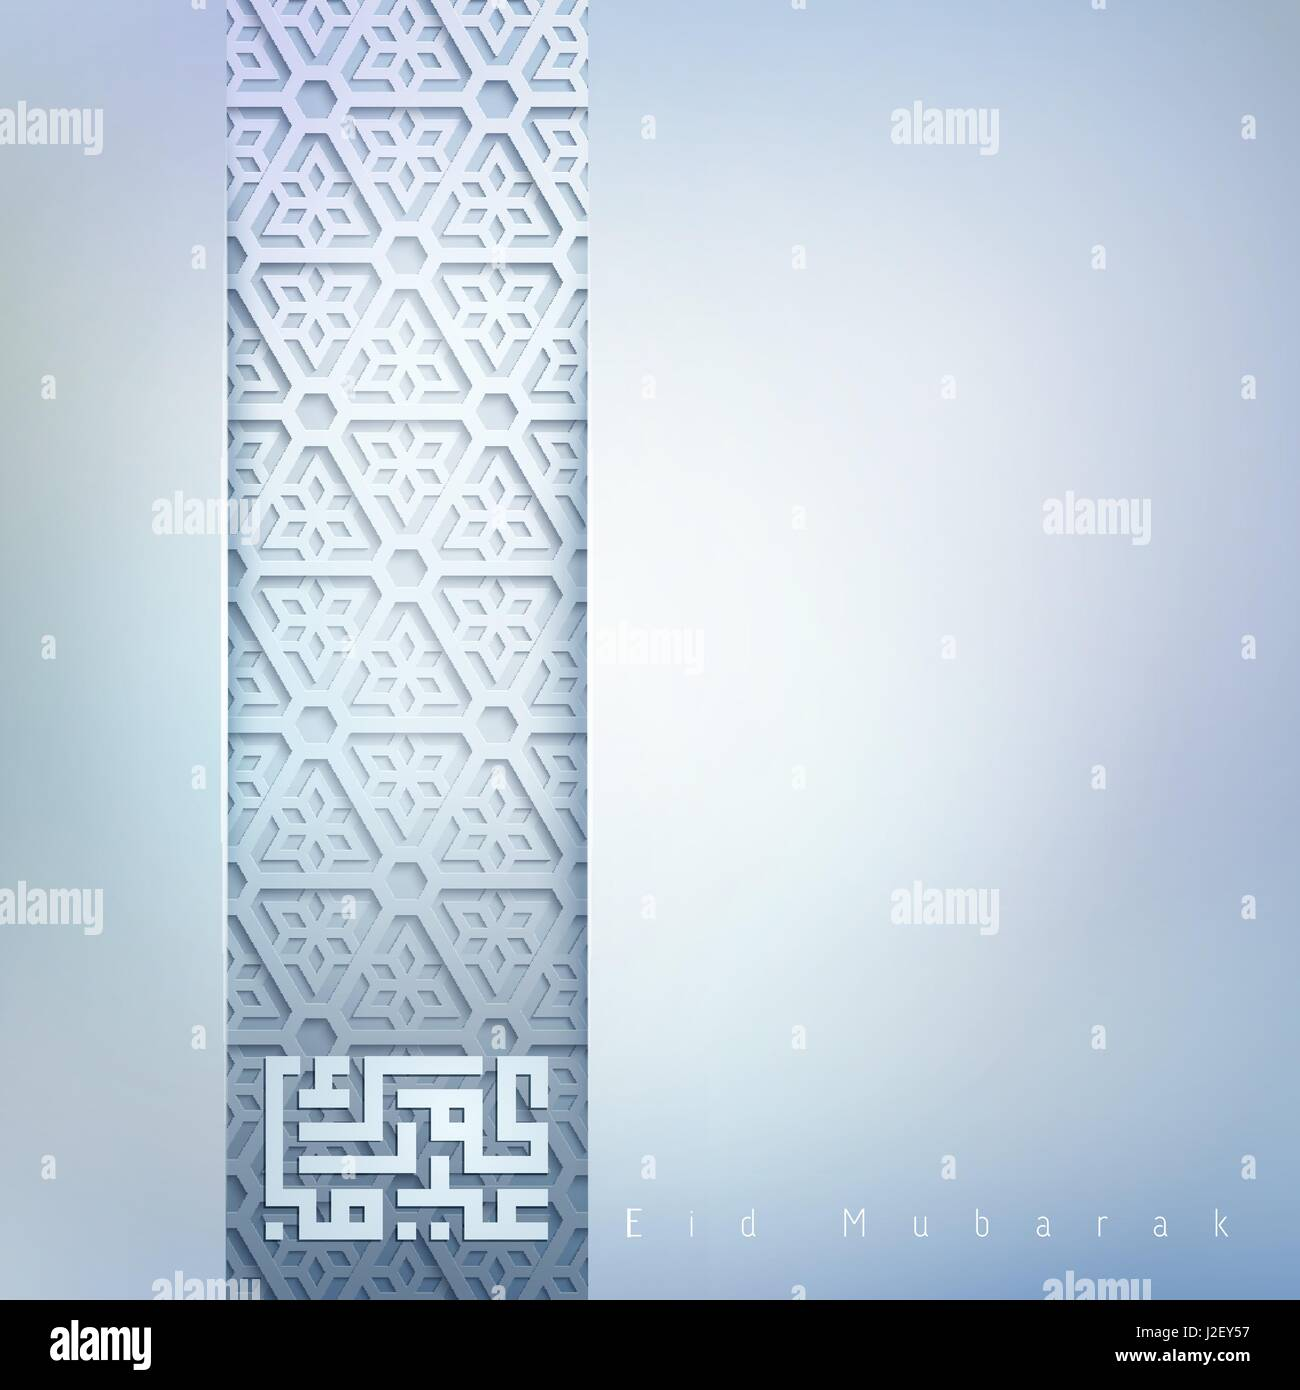 Eid Greeting Cards Stock Photos Eid Greeting Cards Stock Images